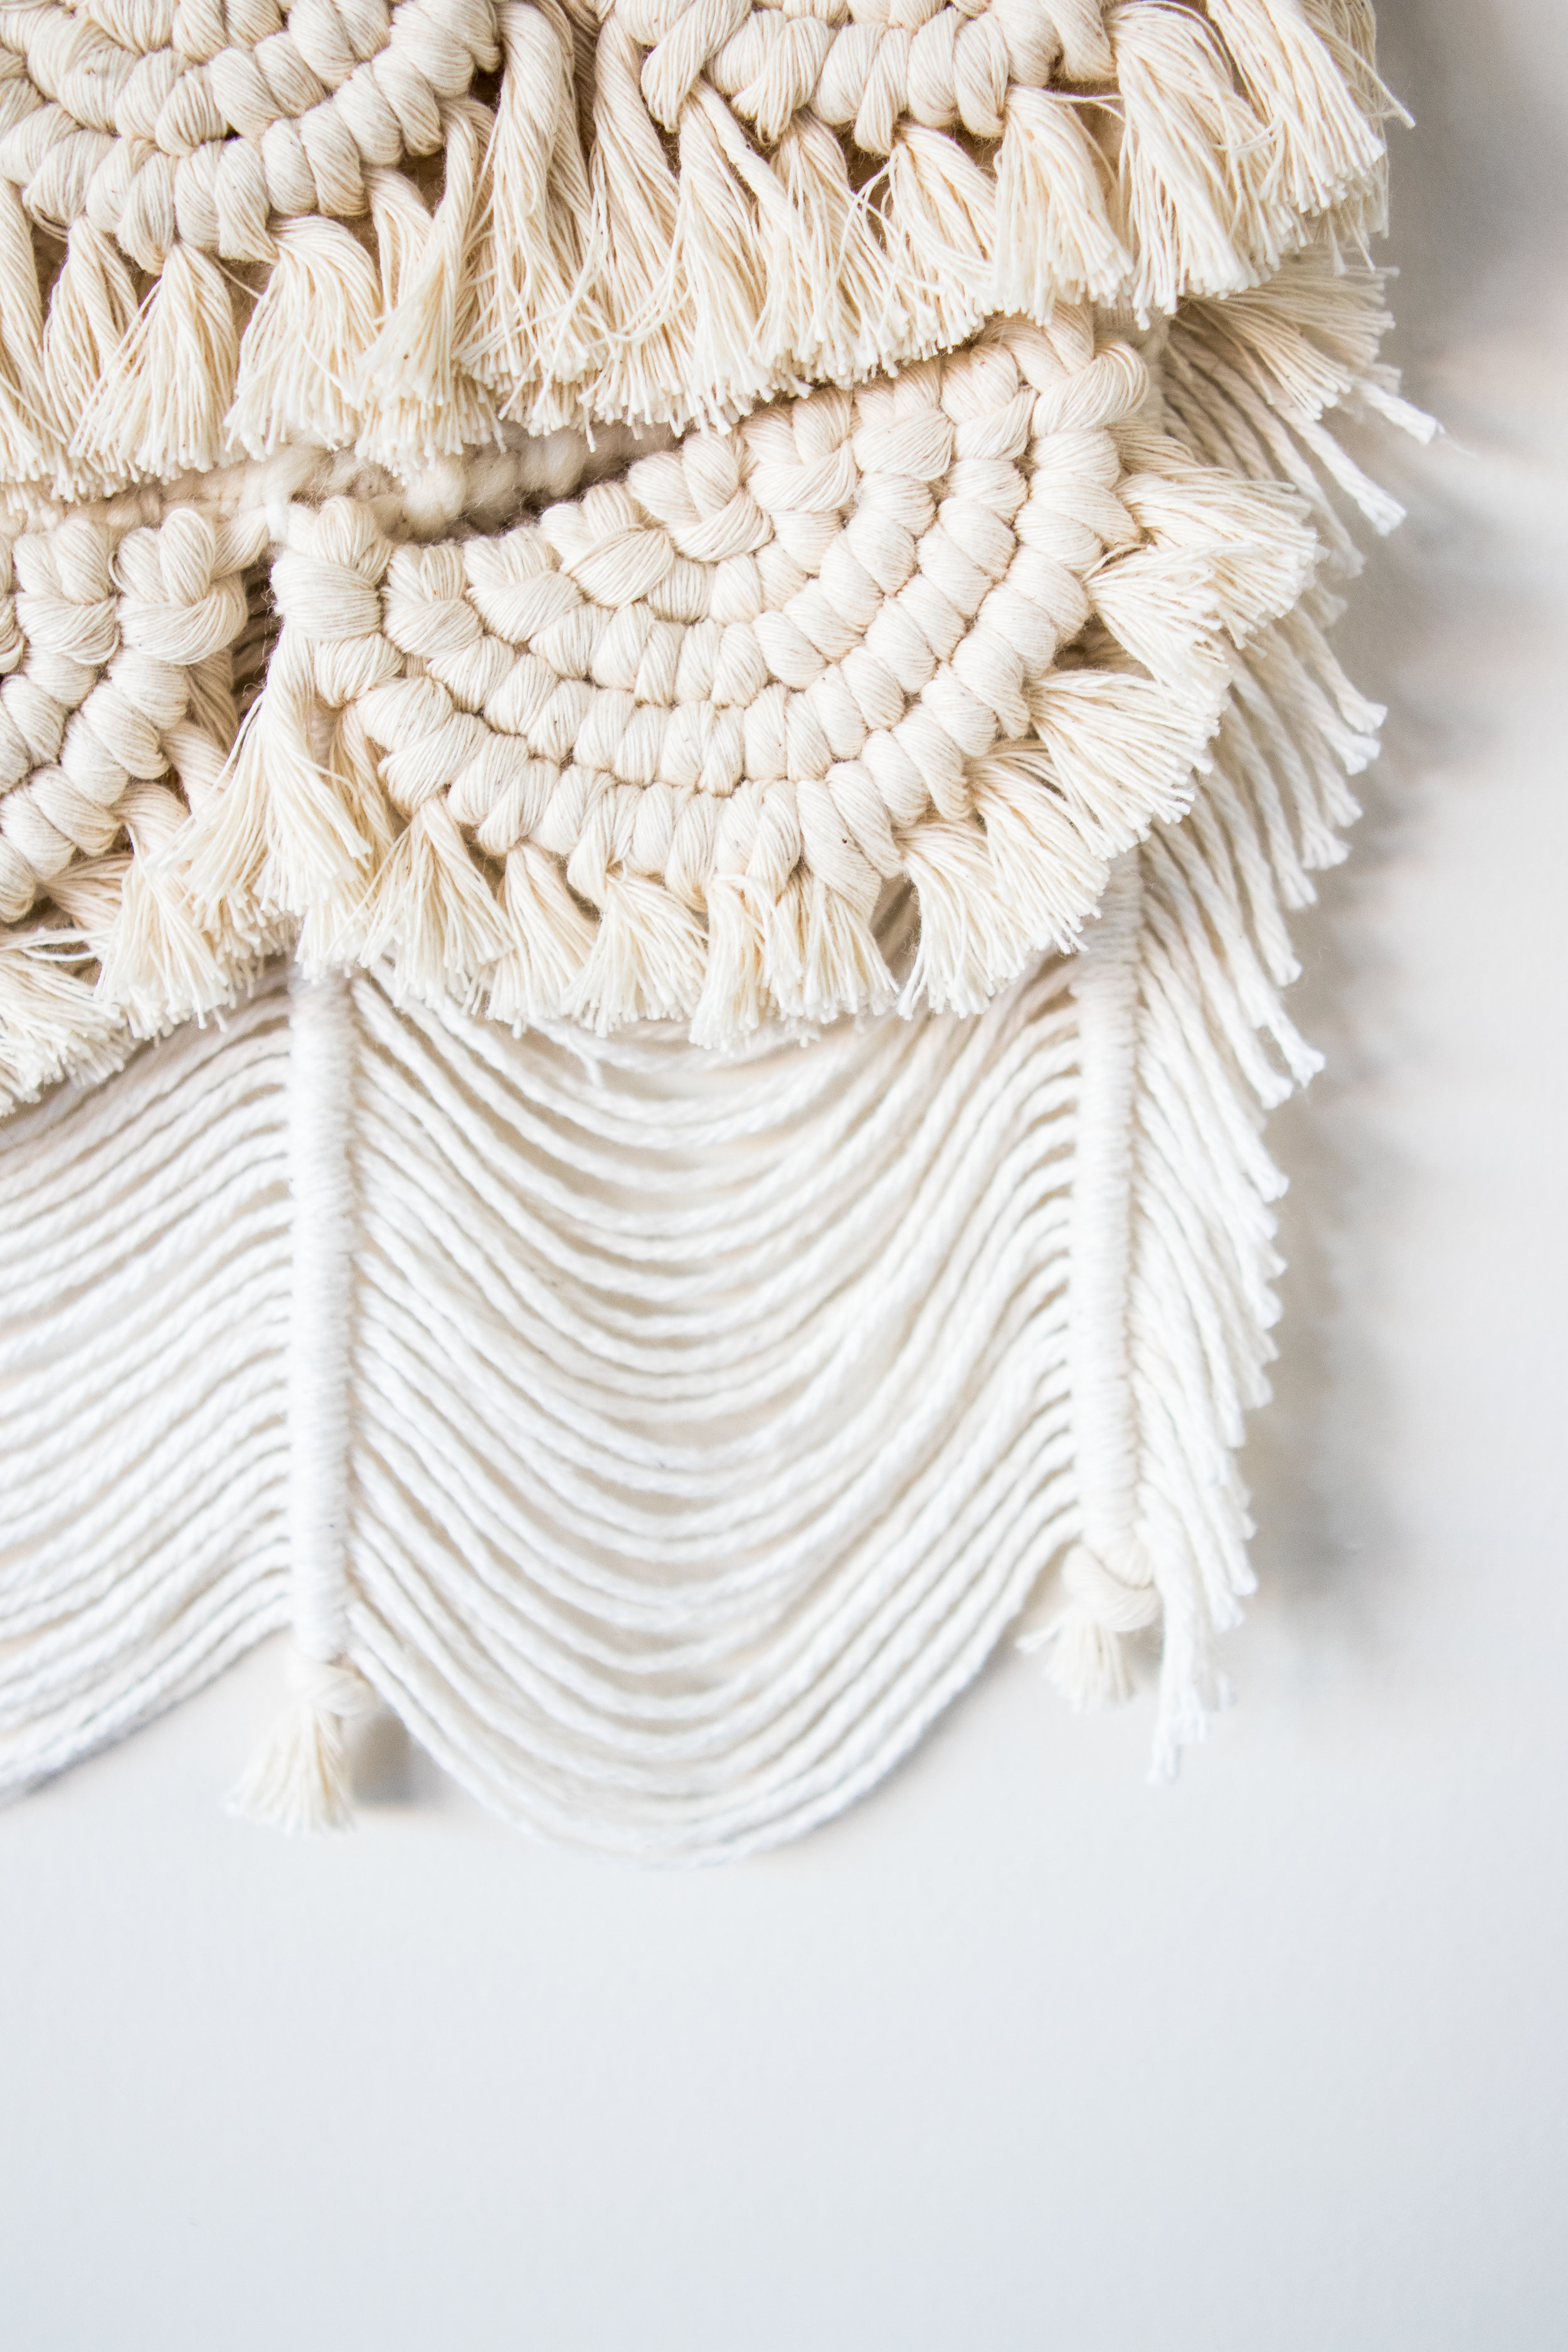 macrame tapestries full-3.jpg